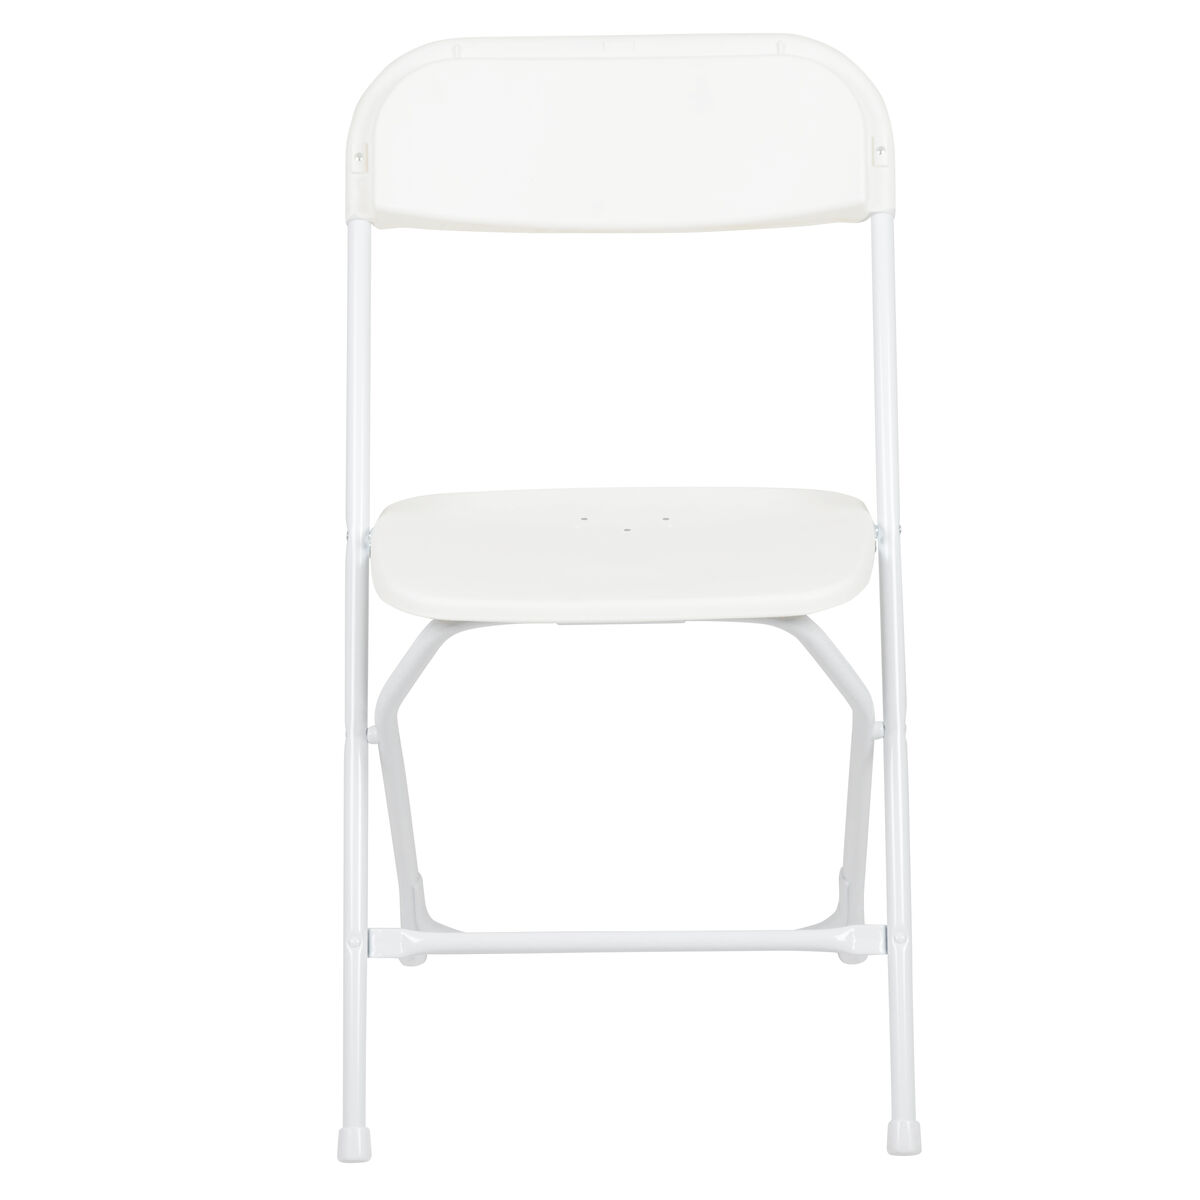 Incredible Hercules Series 650 Lb Capacity Premium White Plastic Folding Chair Gamerscity Chair Design For Home Gamerscityorg